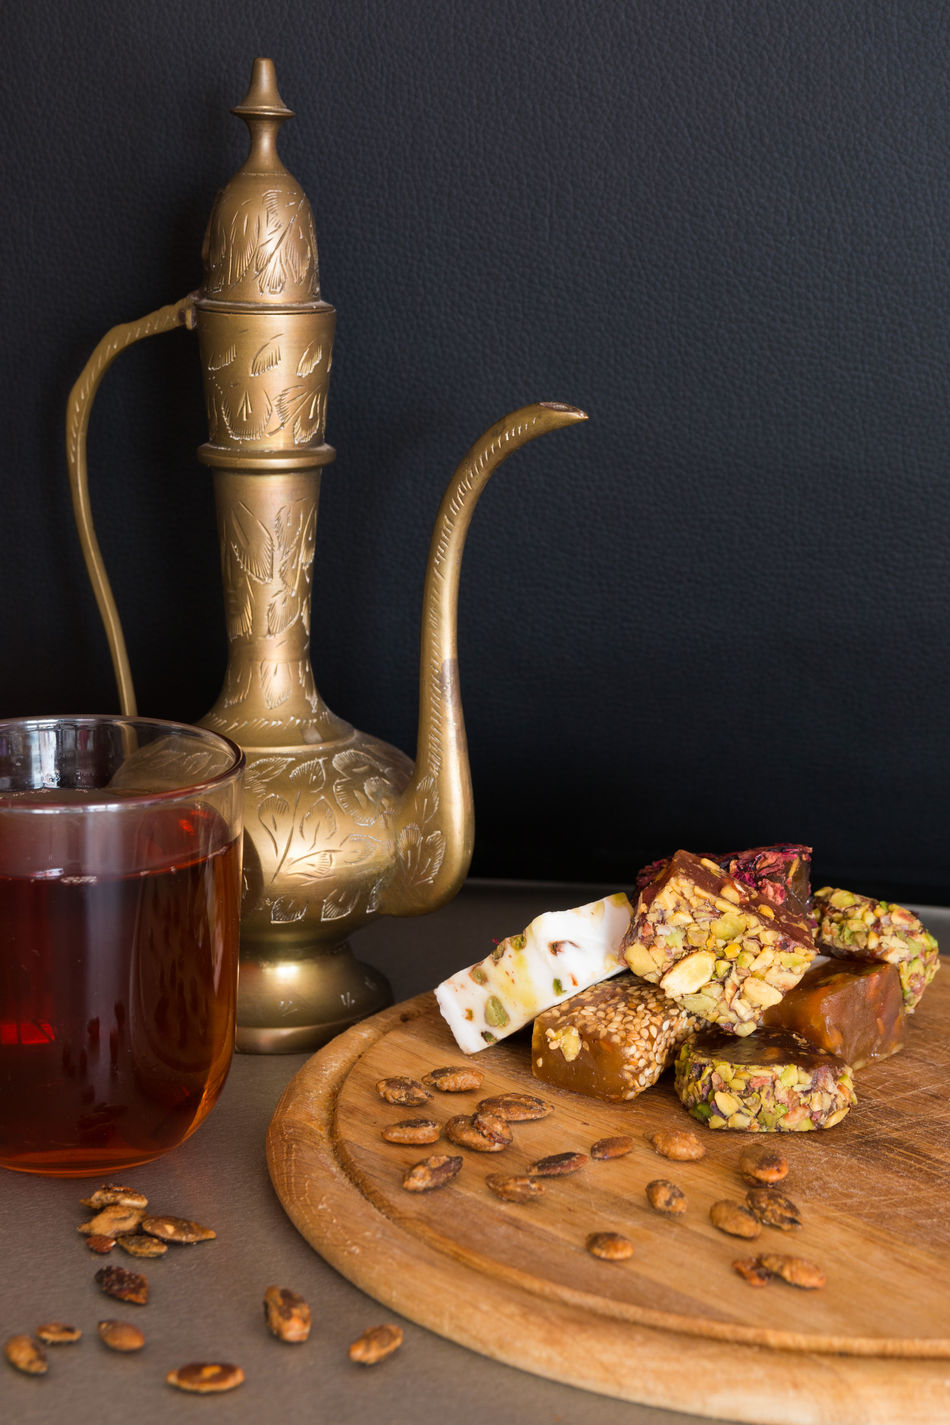 Black Background Close-up Food Freshness Gold Gold Colored Gourmet Healthy Eating Indoors  Jug No People Ready-to-eat Sweet Table Tea Turkish Delight Turkish Sweets